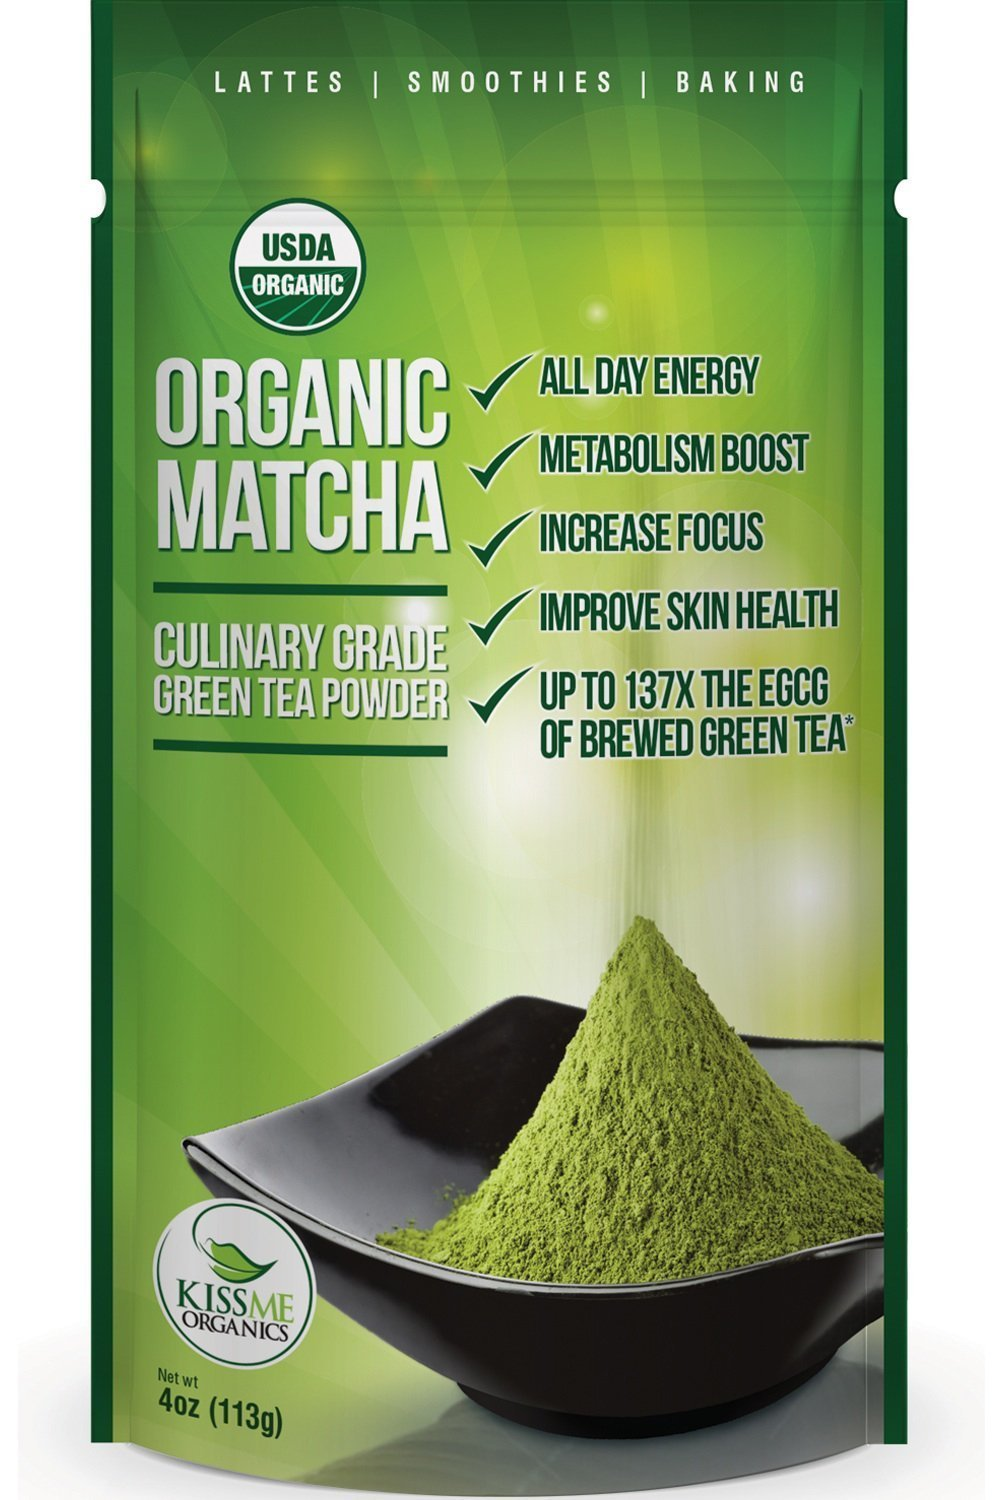 Matcha Green Tea Powder - Powerful Antioxidant Japanese Organic Culinary Grade - 113 grams (4 oz) - For use in Lattes